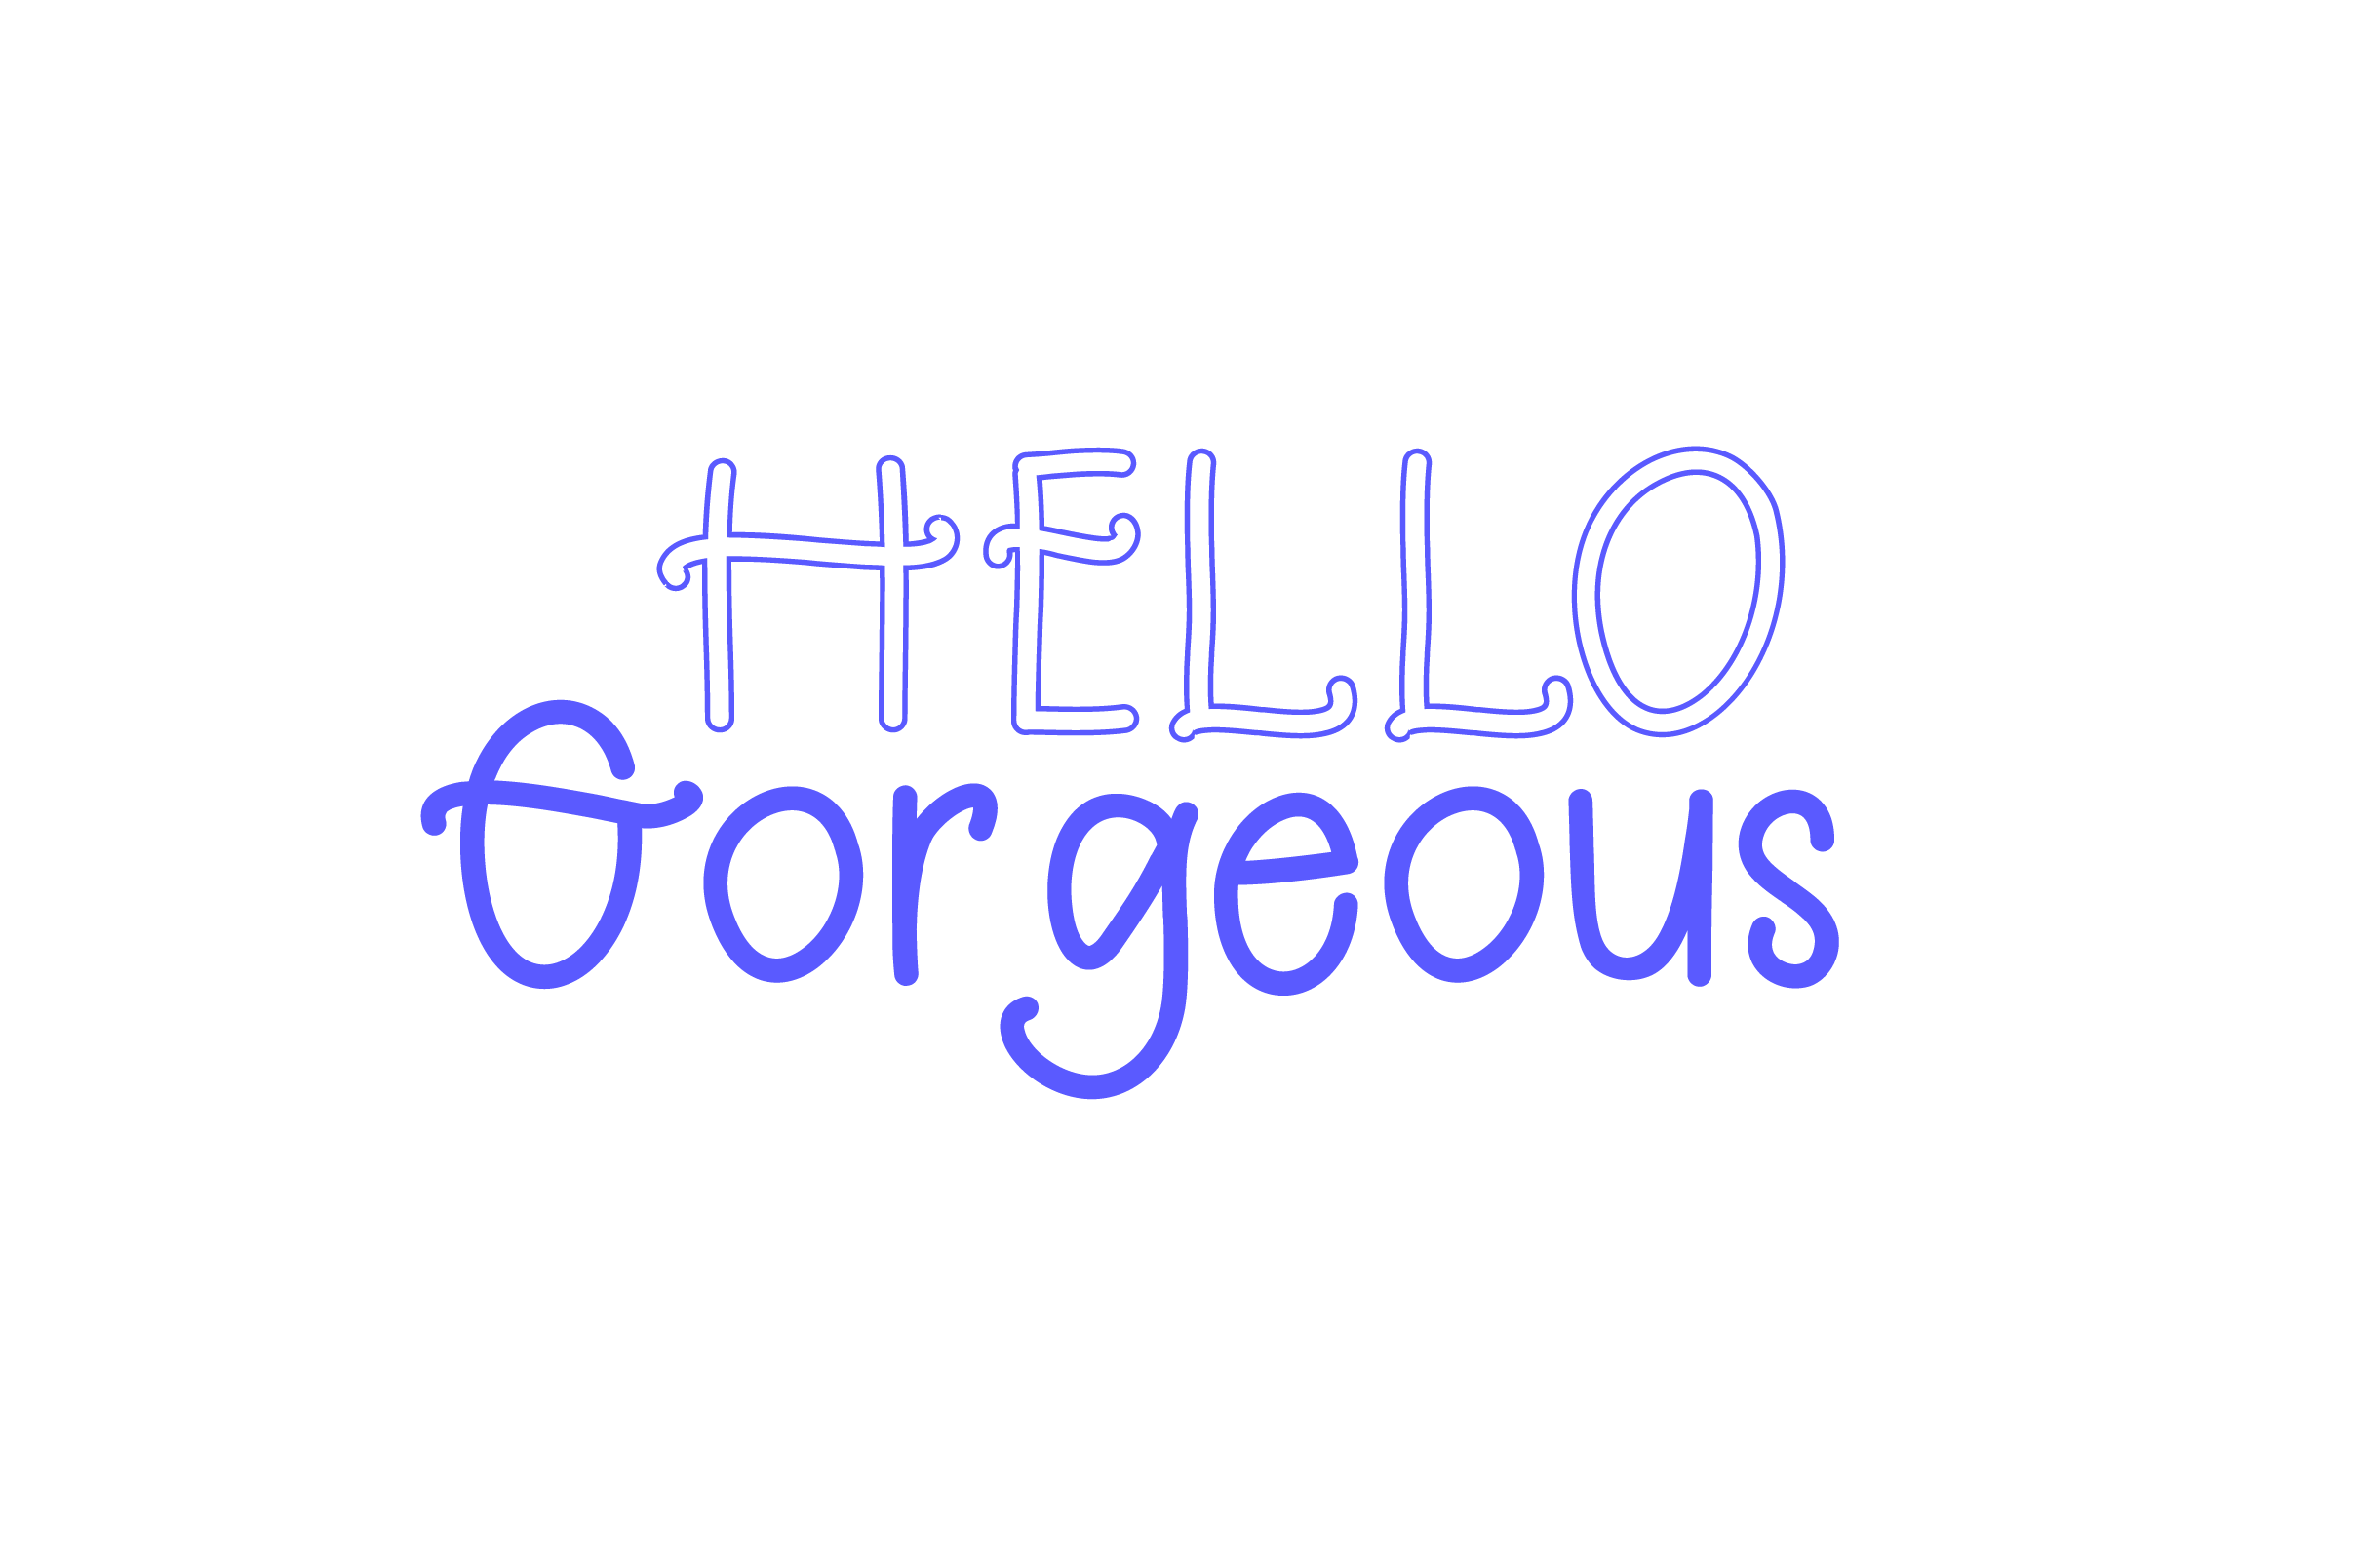 Berrylicious Font example image 6